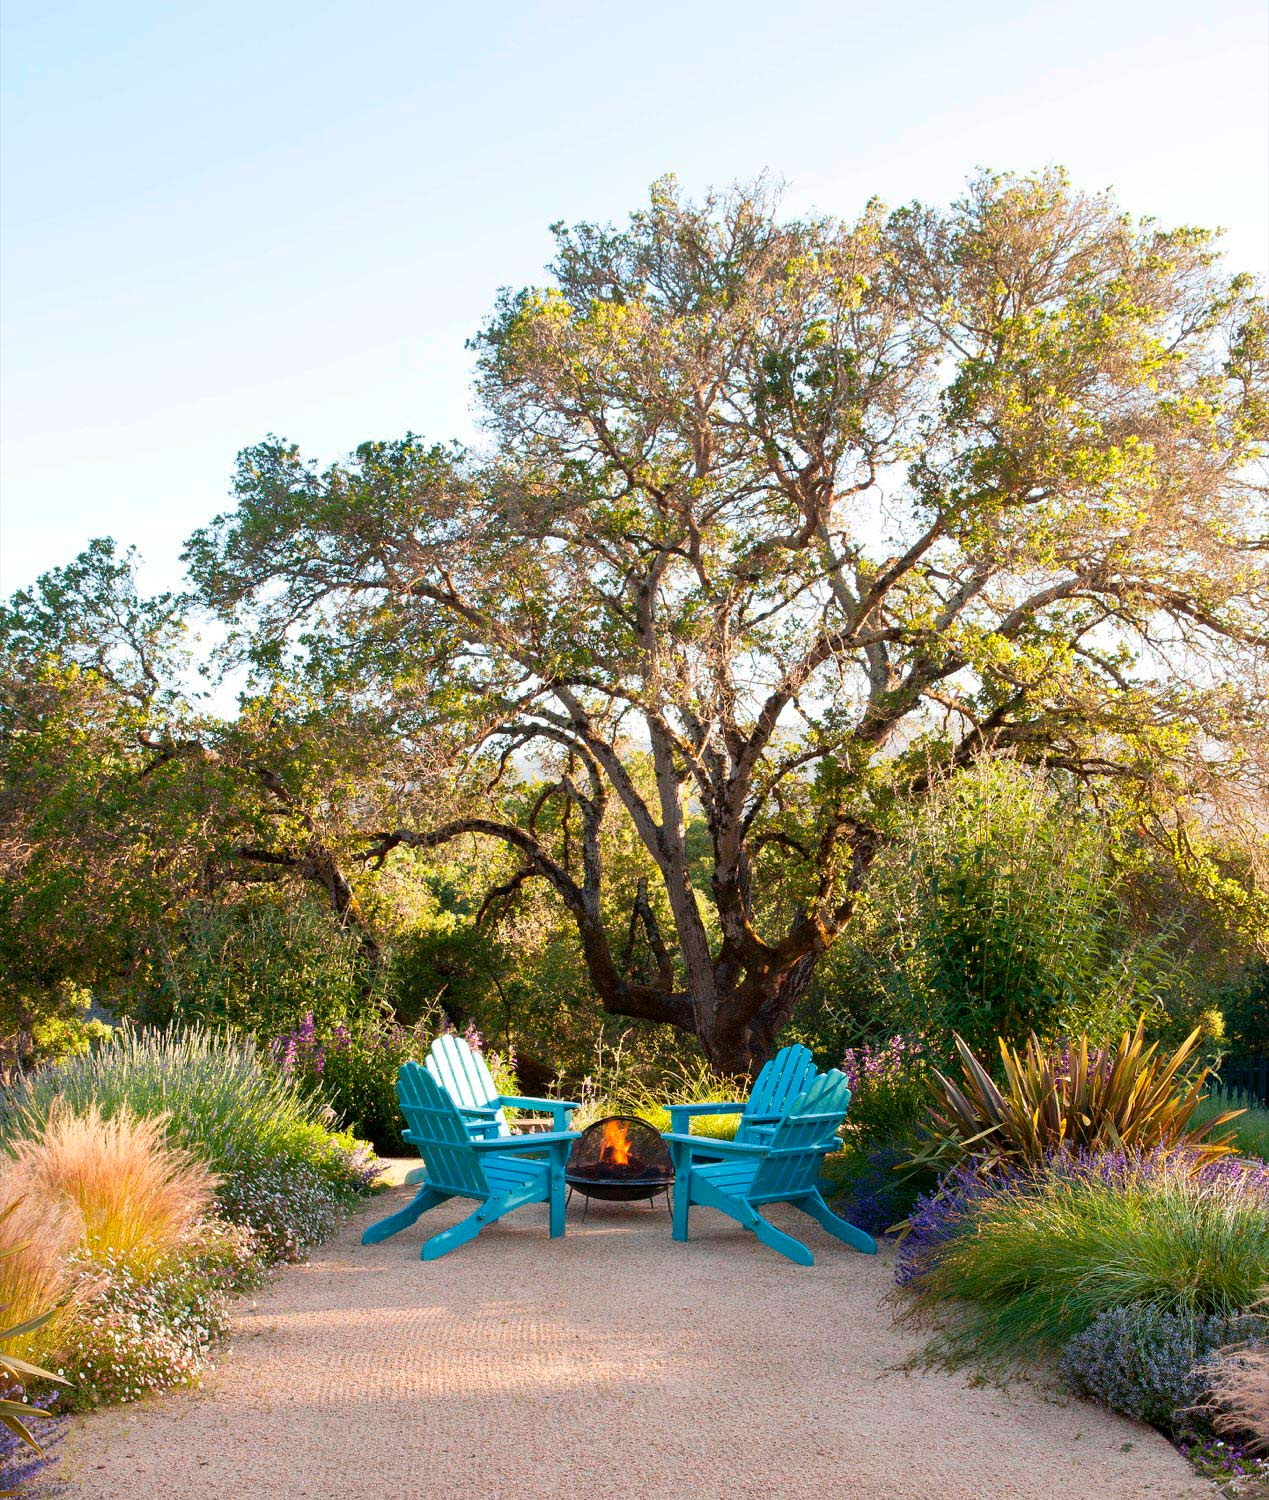 A firepit seating area is arranged under a sweeping oak tree, surrounded by soft, low-water colorful flowers and grasses.